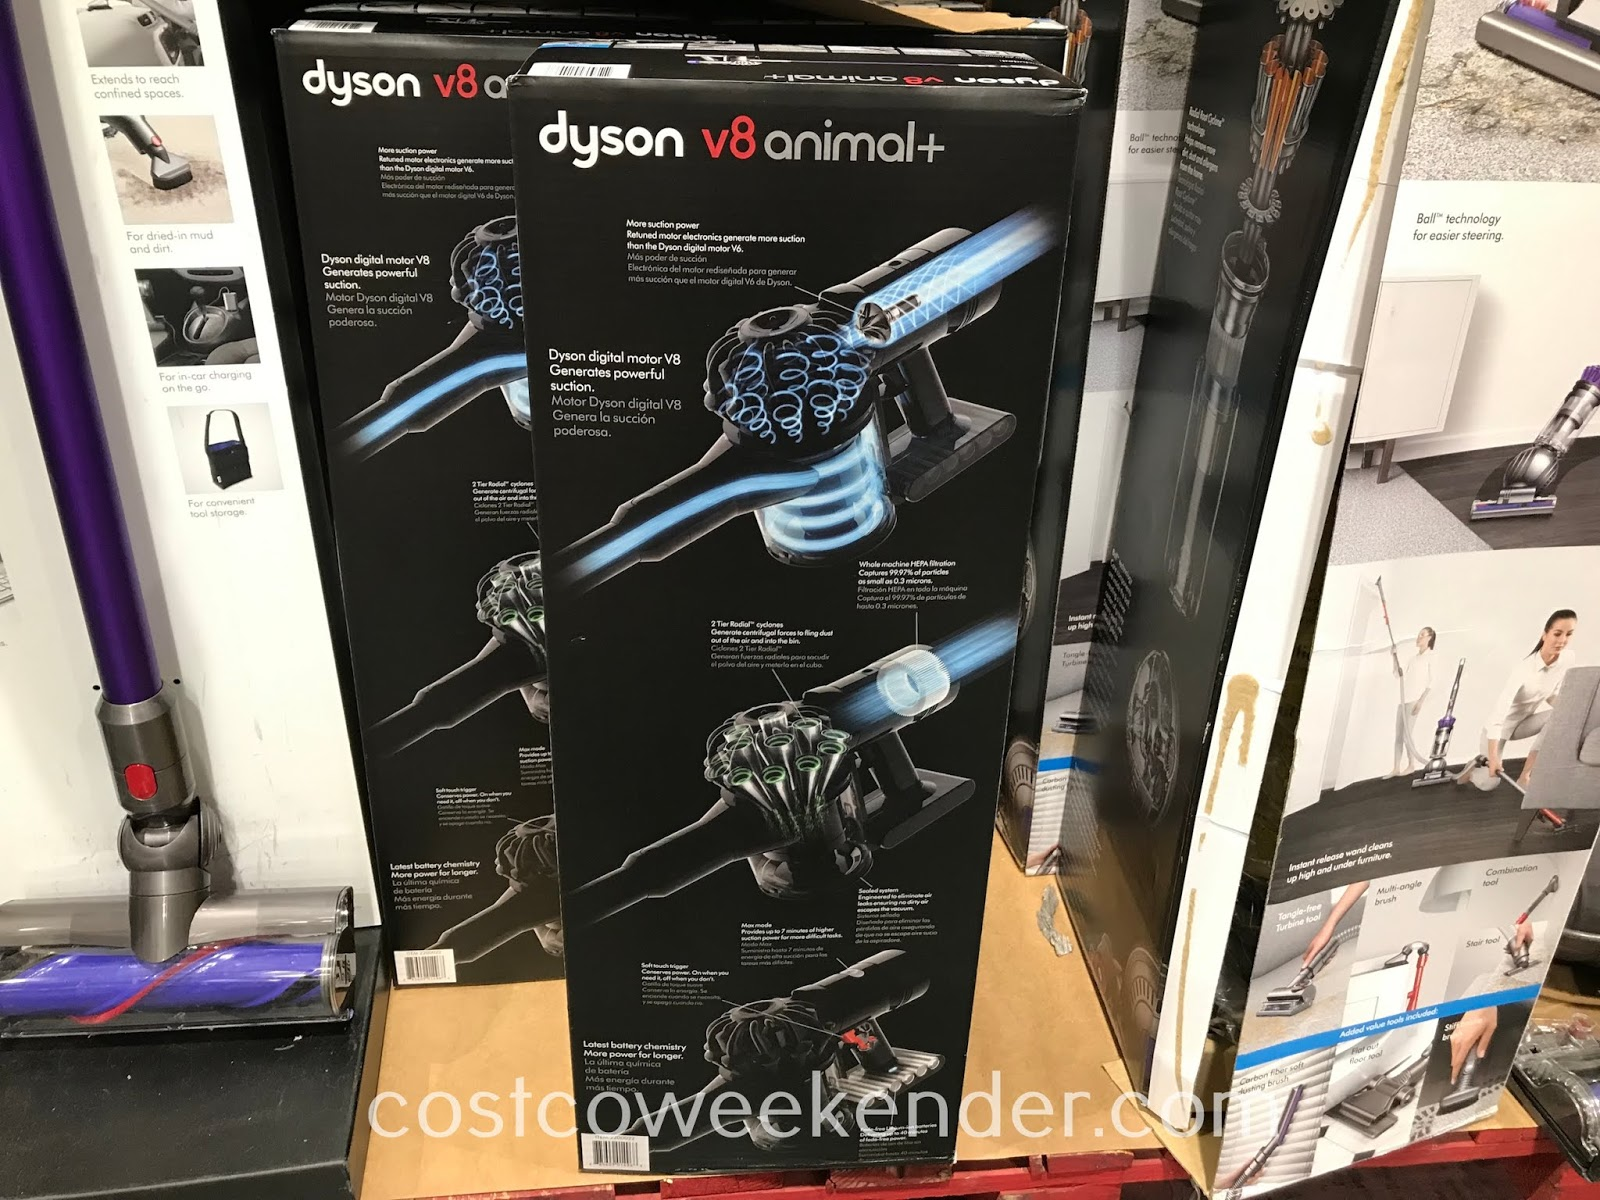 Dyson V8 Animal+ Vacuum: great for any household with pets